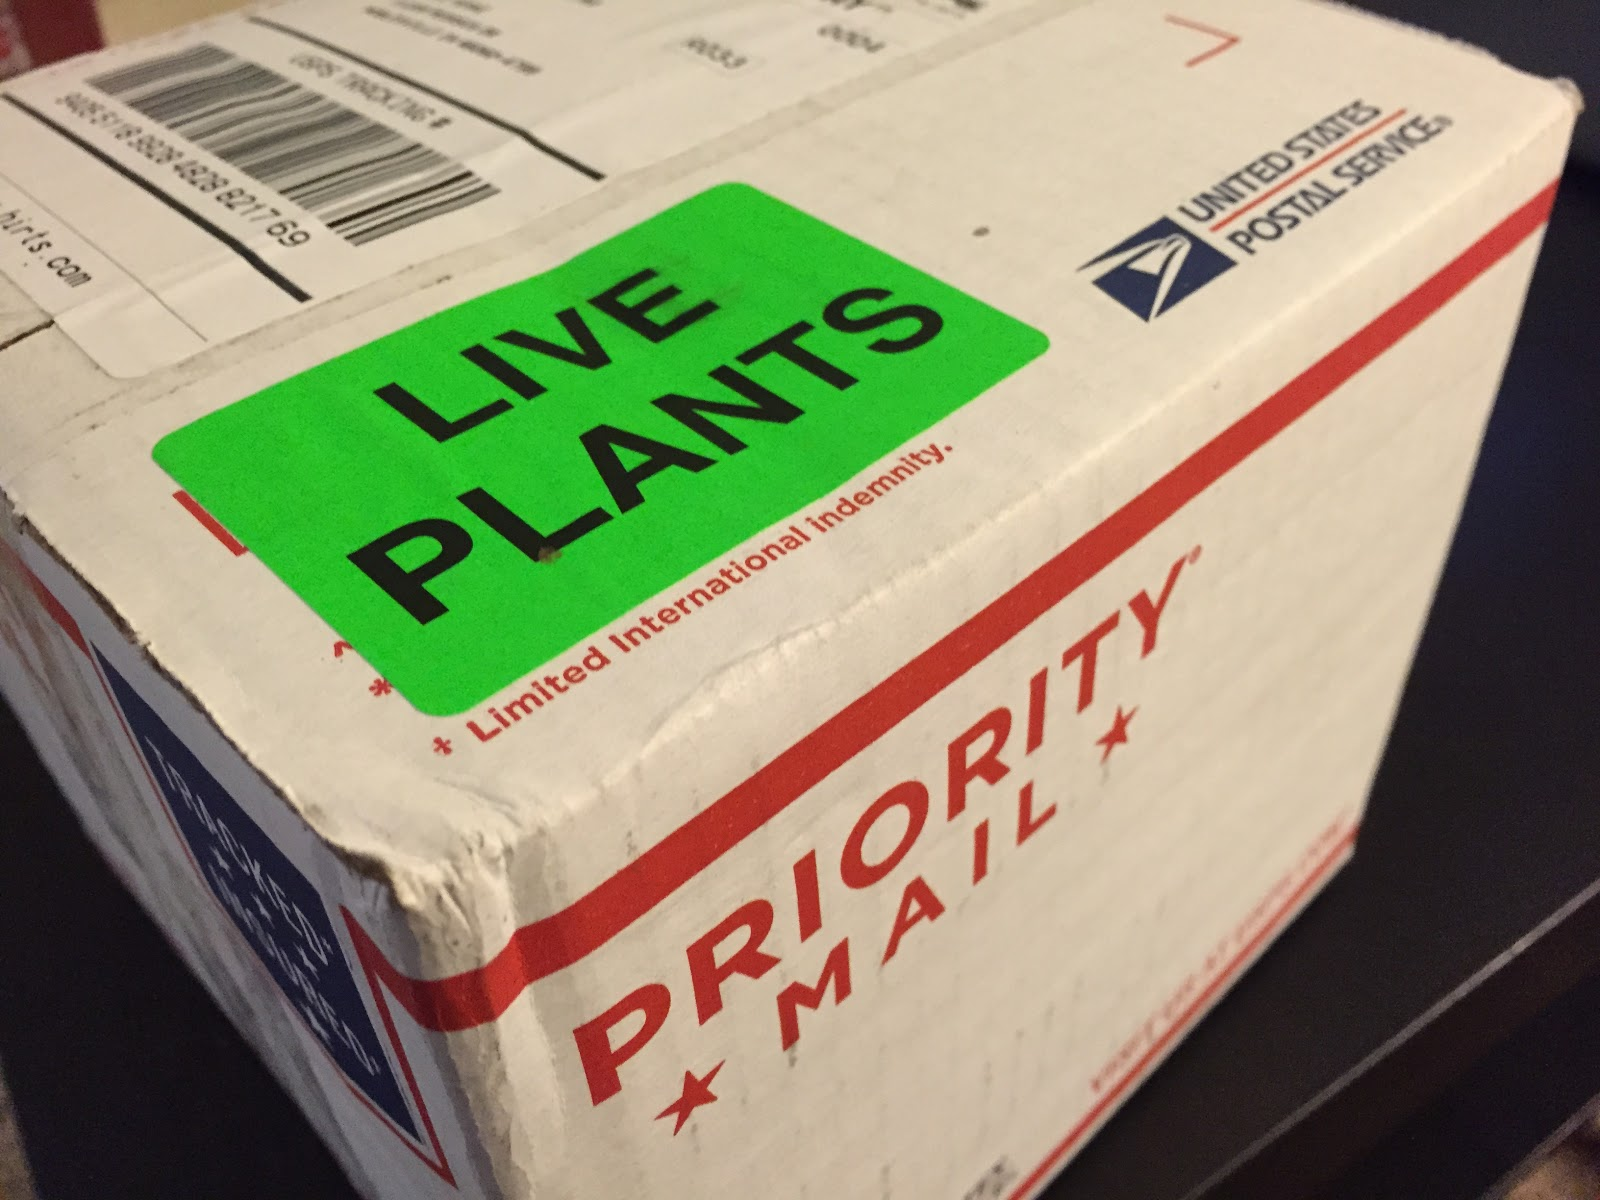 live plants sticker on package